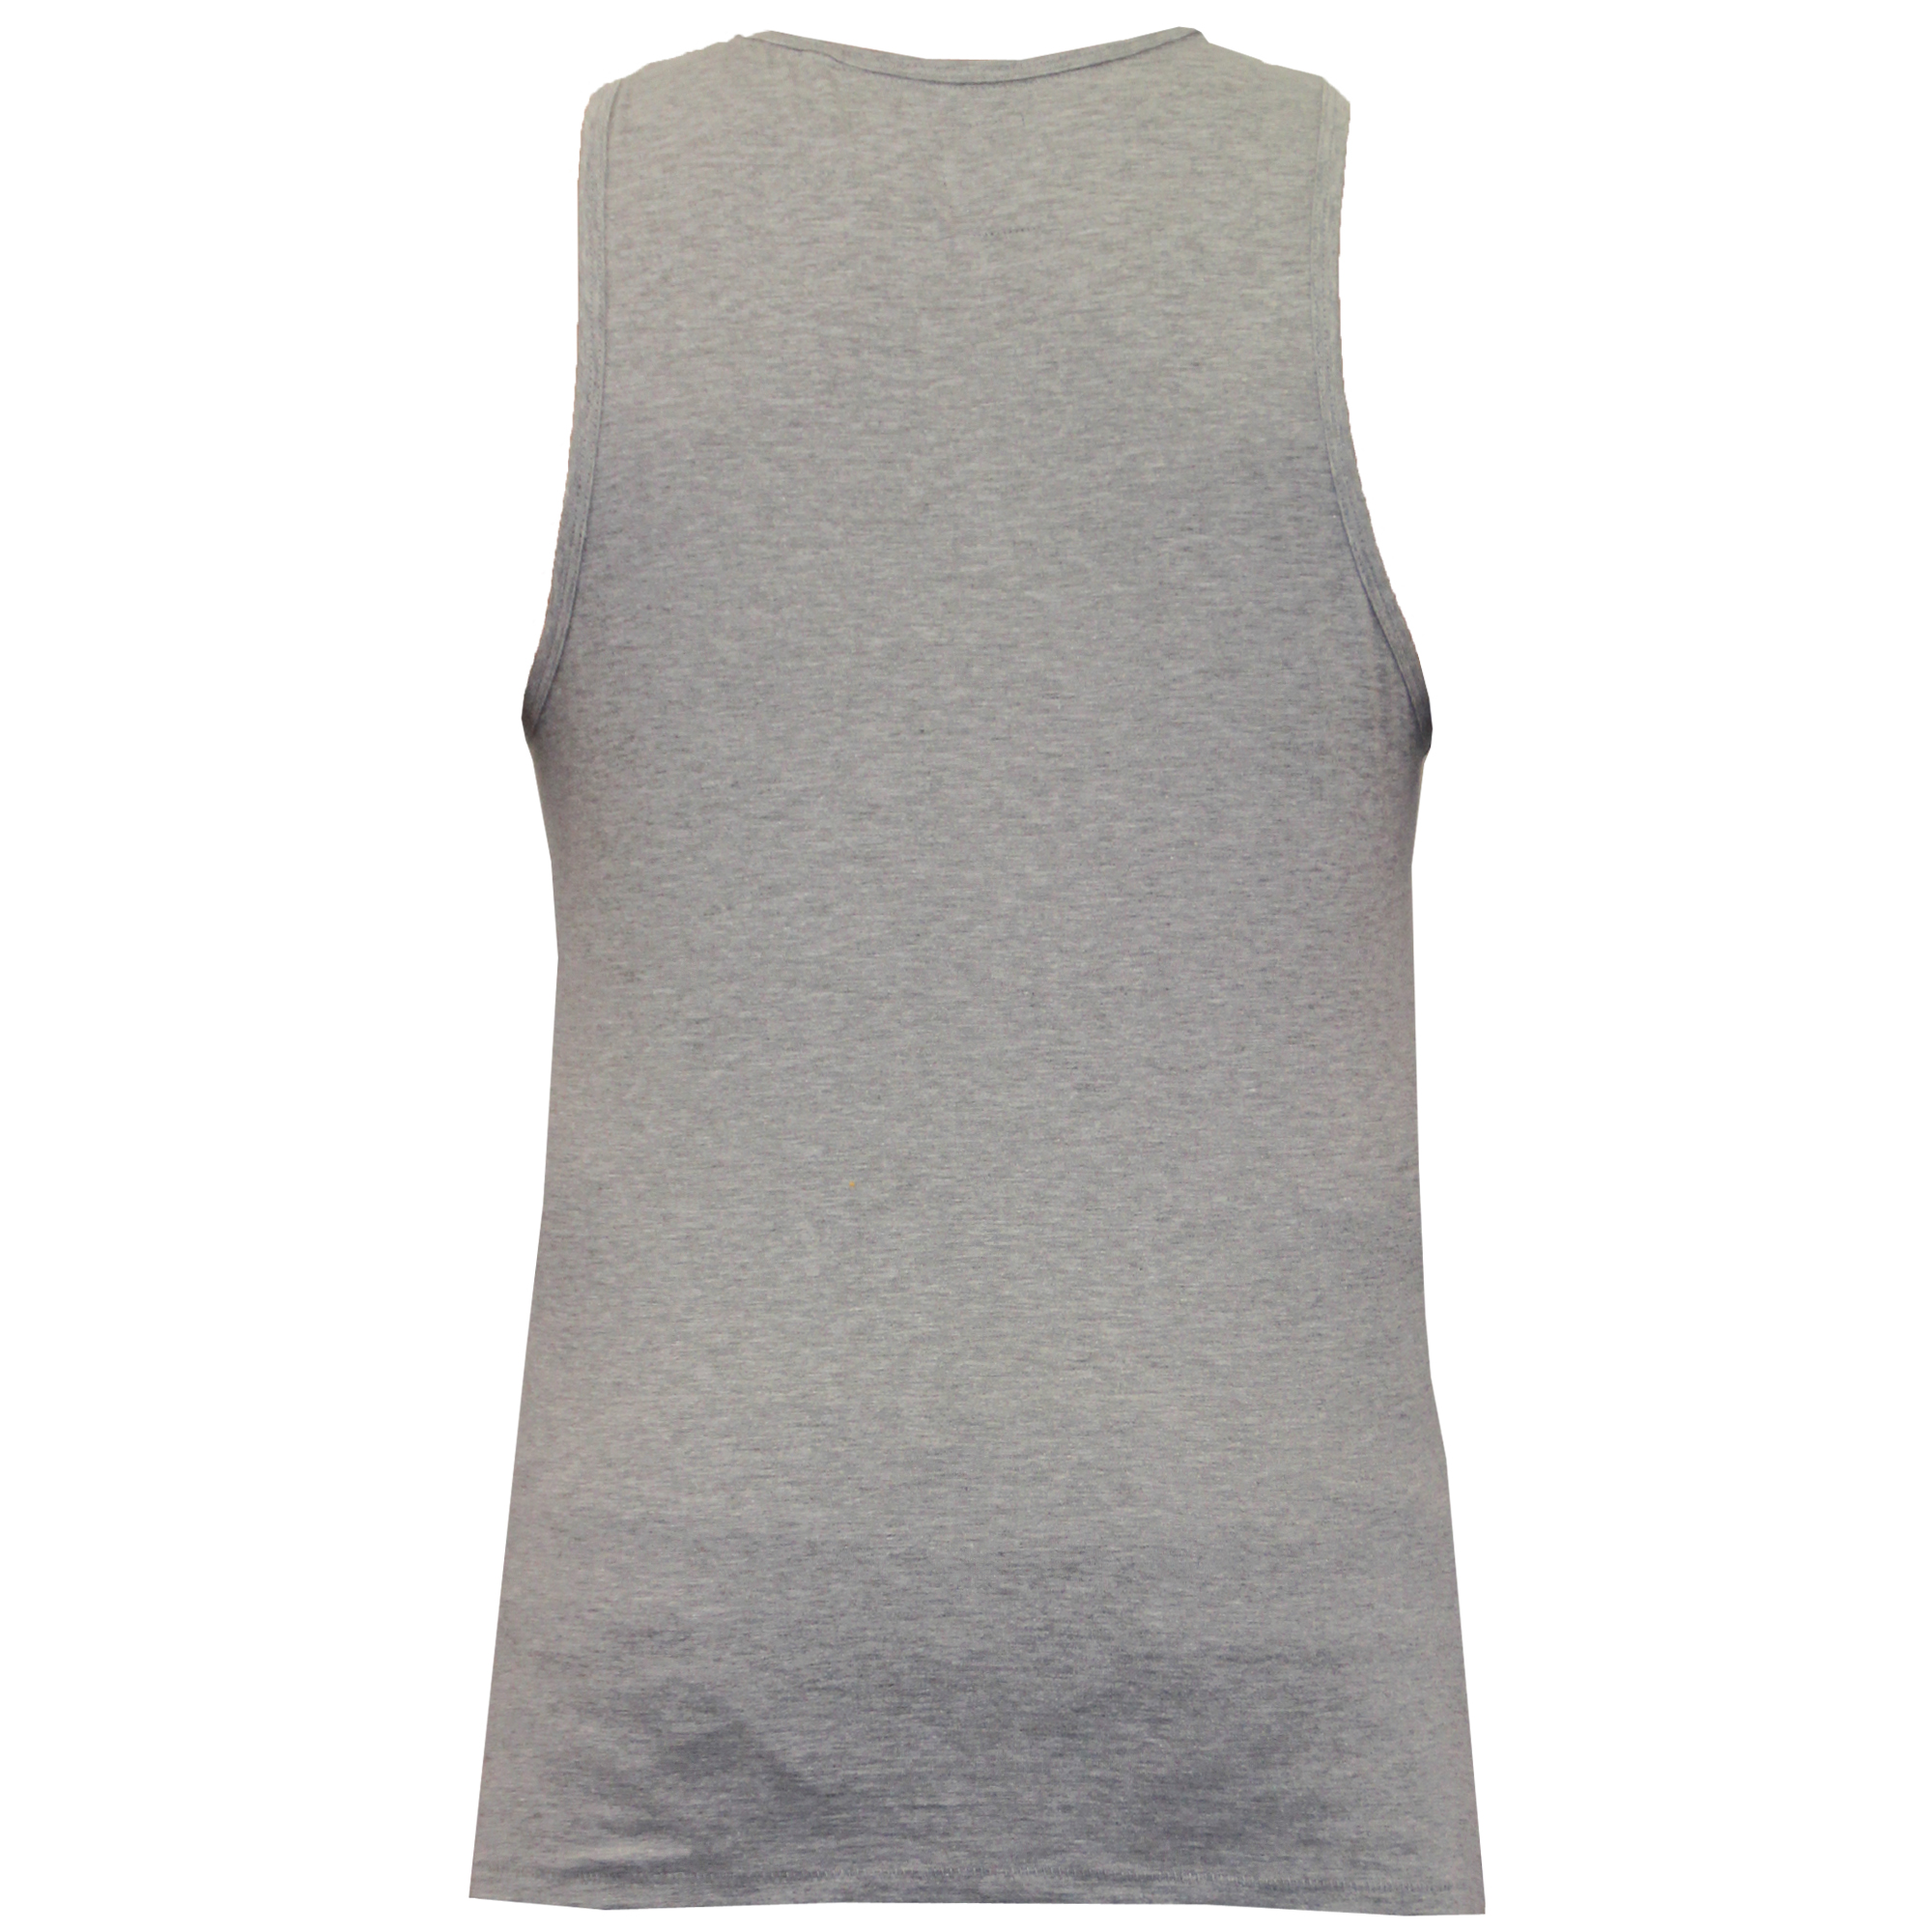 Mens Vest Threadbare Tank Top Cotton Sleeveless Active Gym Beach Plain Summer